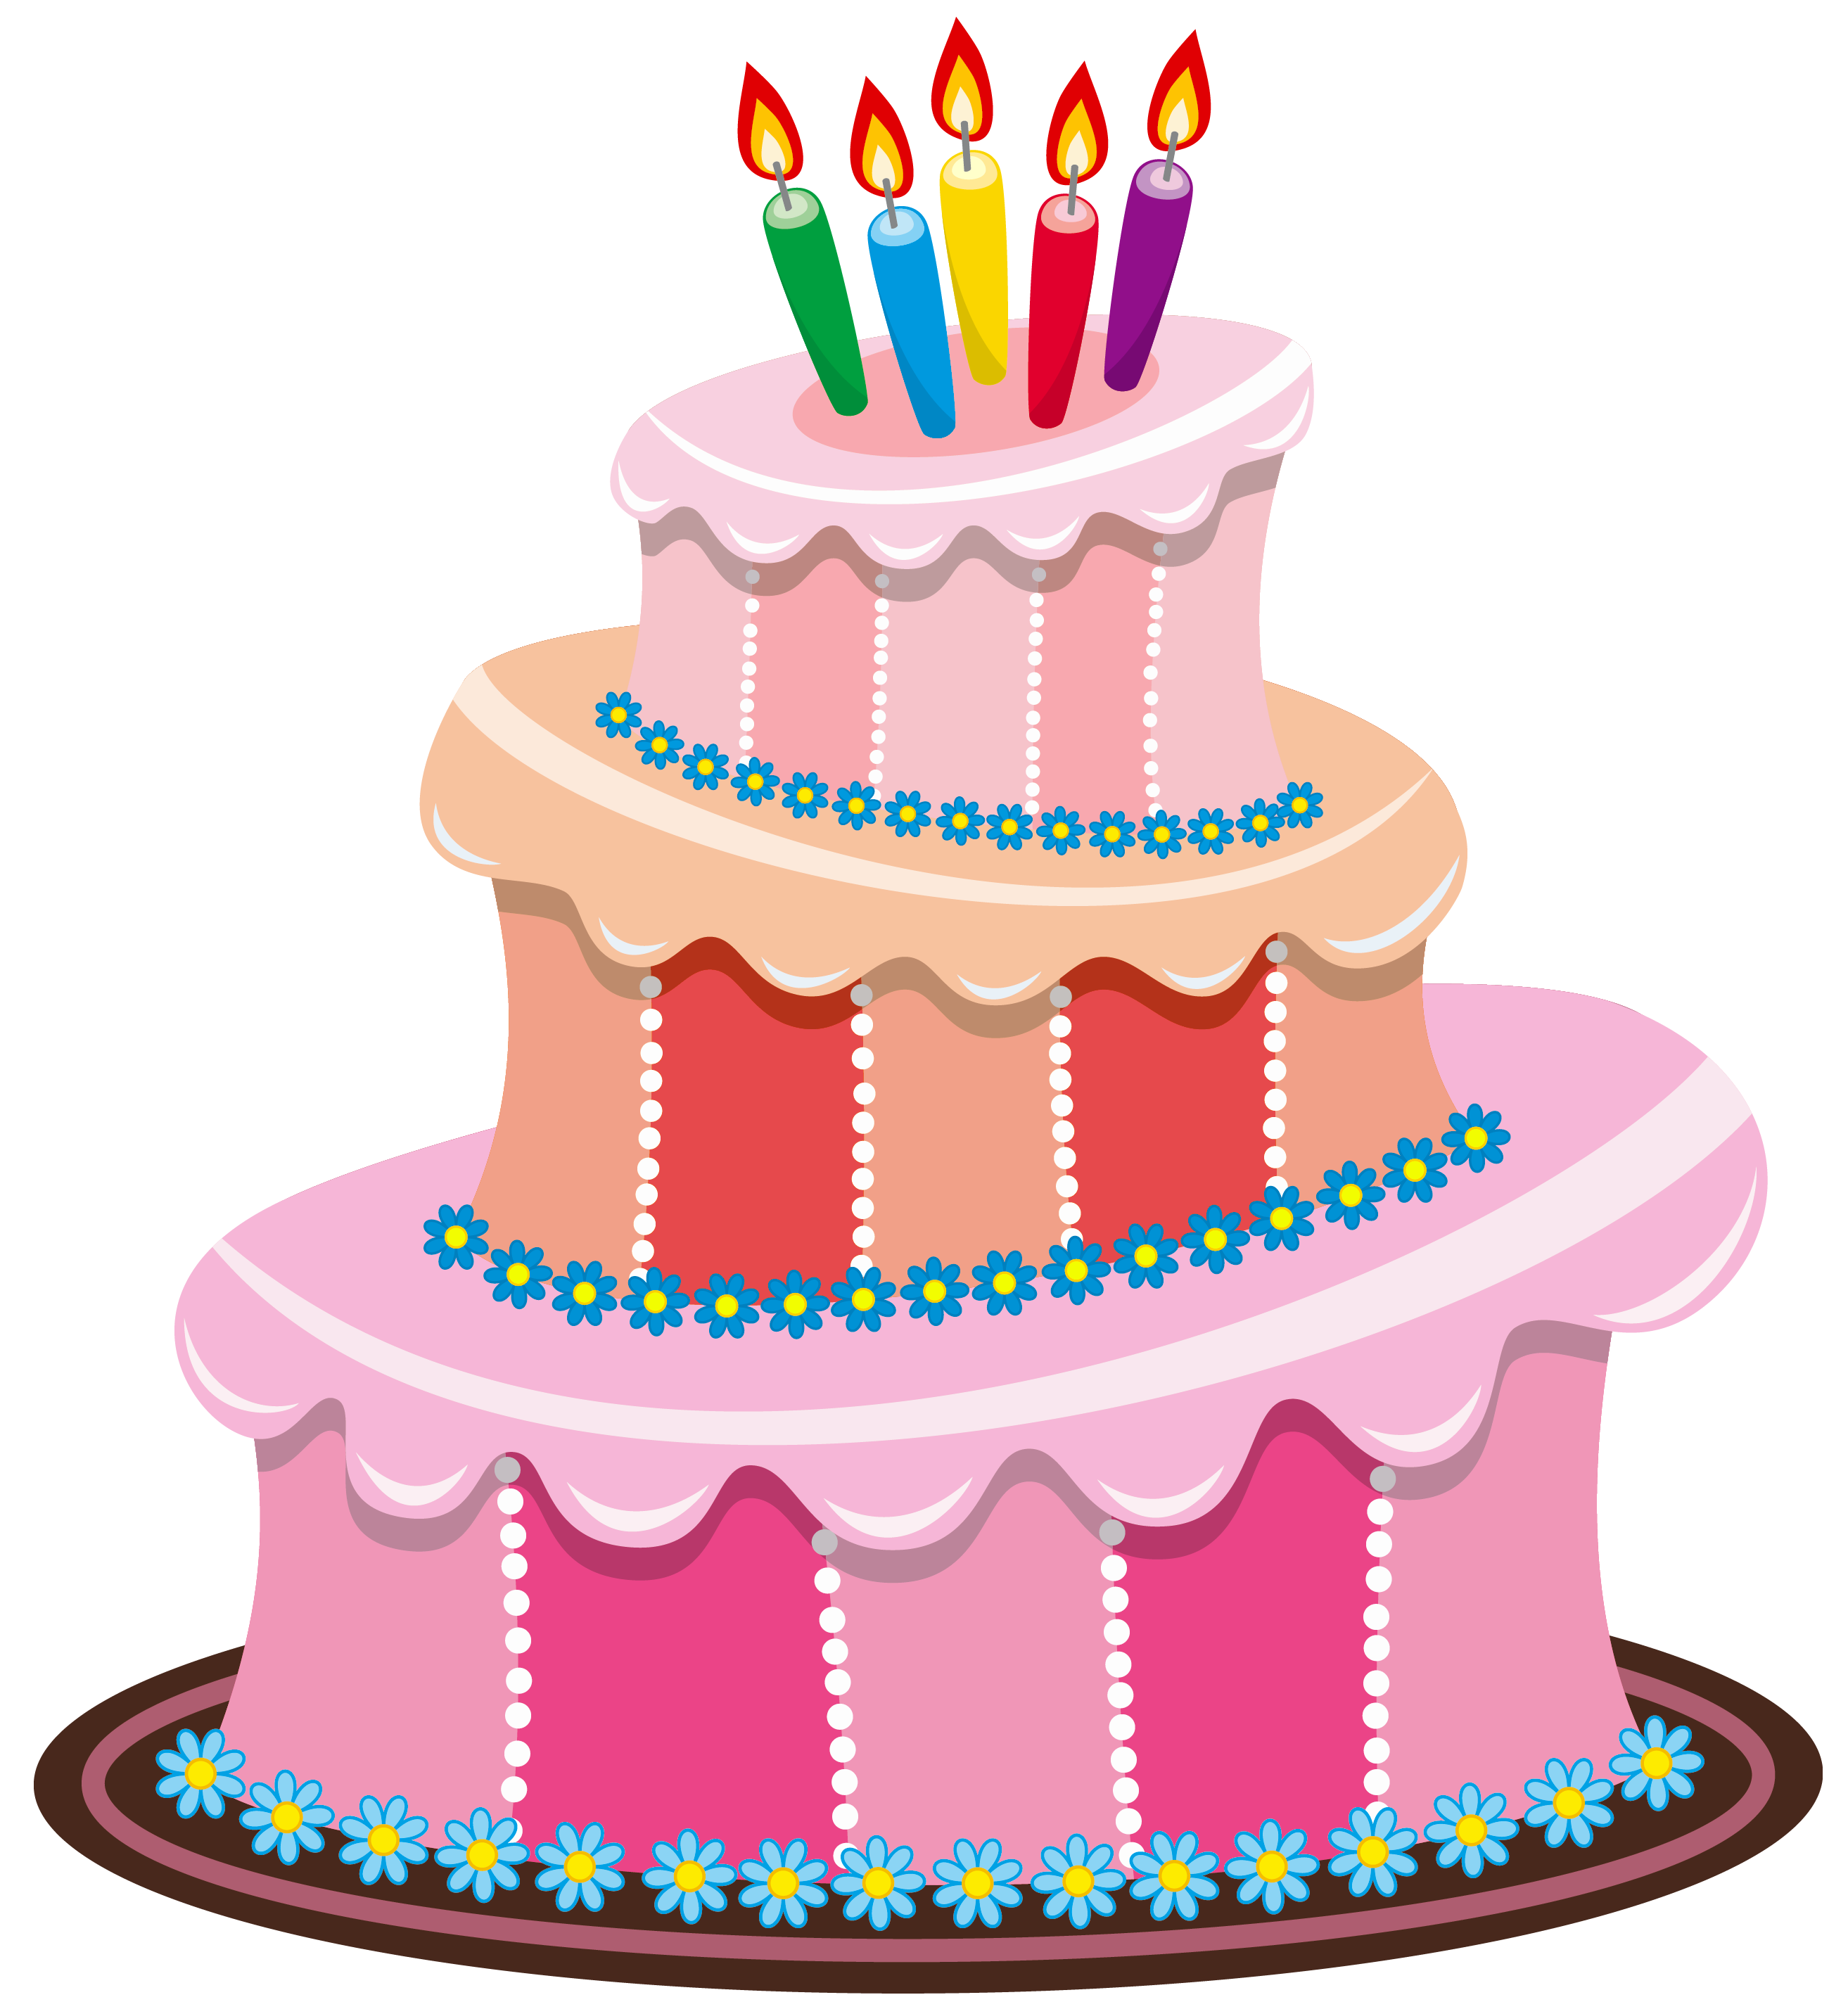 Birthday cake clipart png. Pink gallery yopriceville high